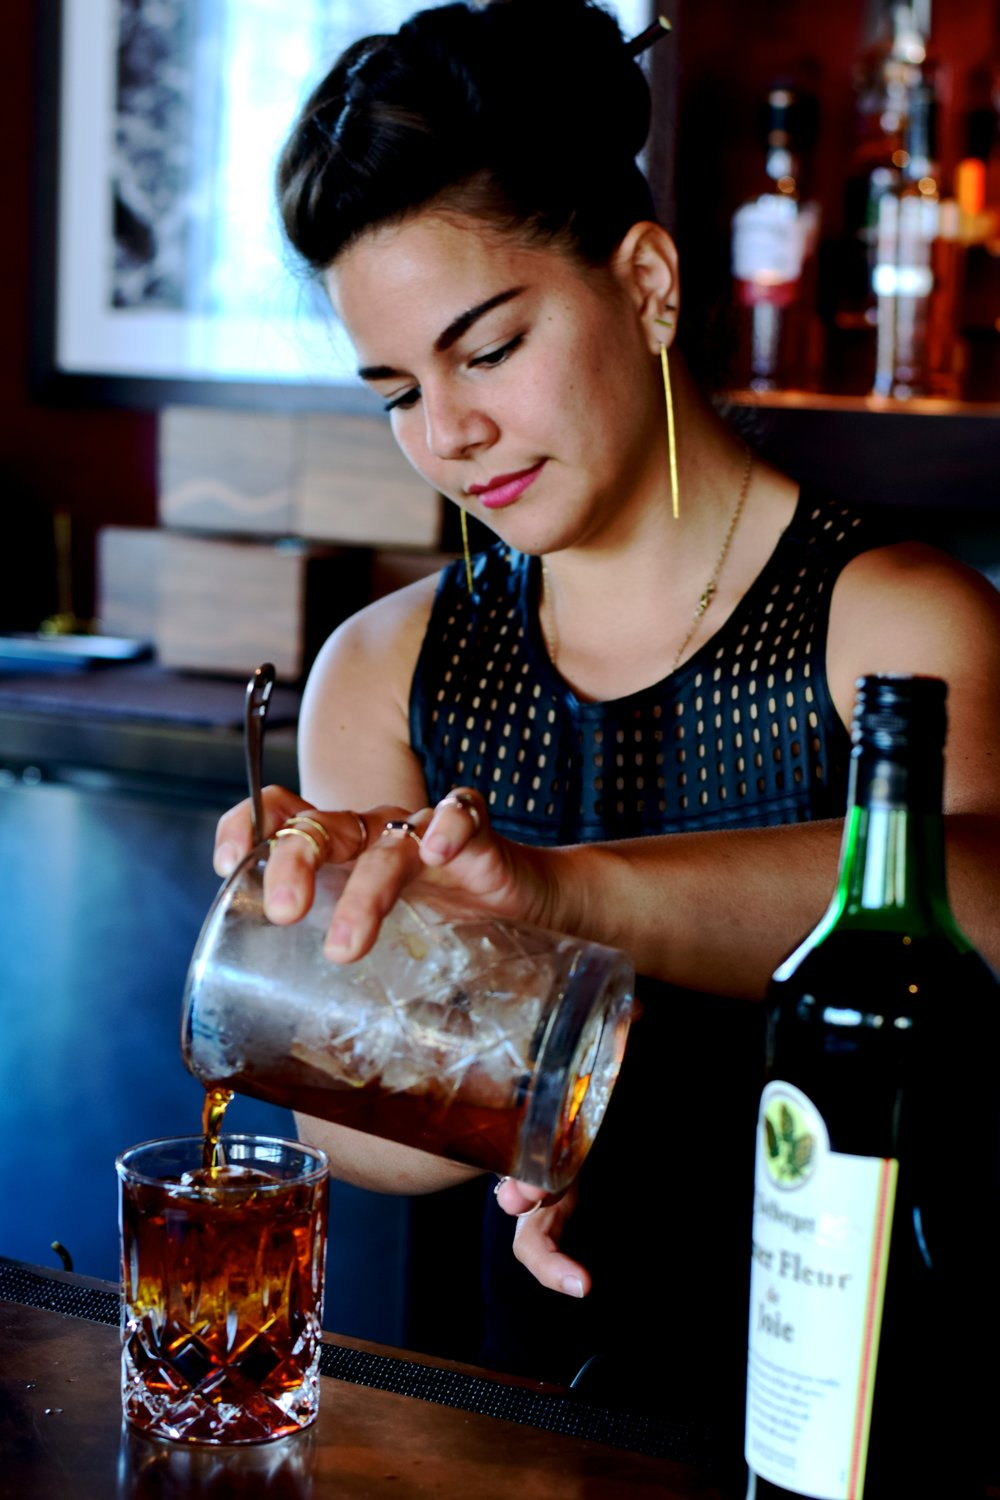 Julia Momose  Food and Wine Best New Bartender 2016   Moon's Age  1.5 oz Wolfberger Amer Fleur de Joie 1.5 oz Hibiki Harmony .5 oz Cocchi di Torino .25 oz Suze .25 oz Fernet Branca  Method: Stirred Glassware: Single Rocks; Large Rock Garnish: Lemon Expression  created while working at The GreenRiver in Chicago photo: Kristine Sherred